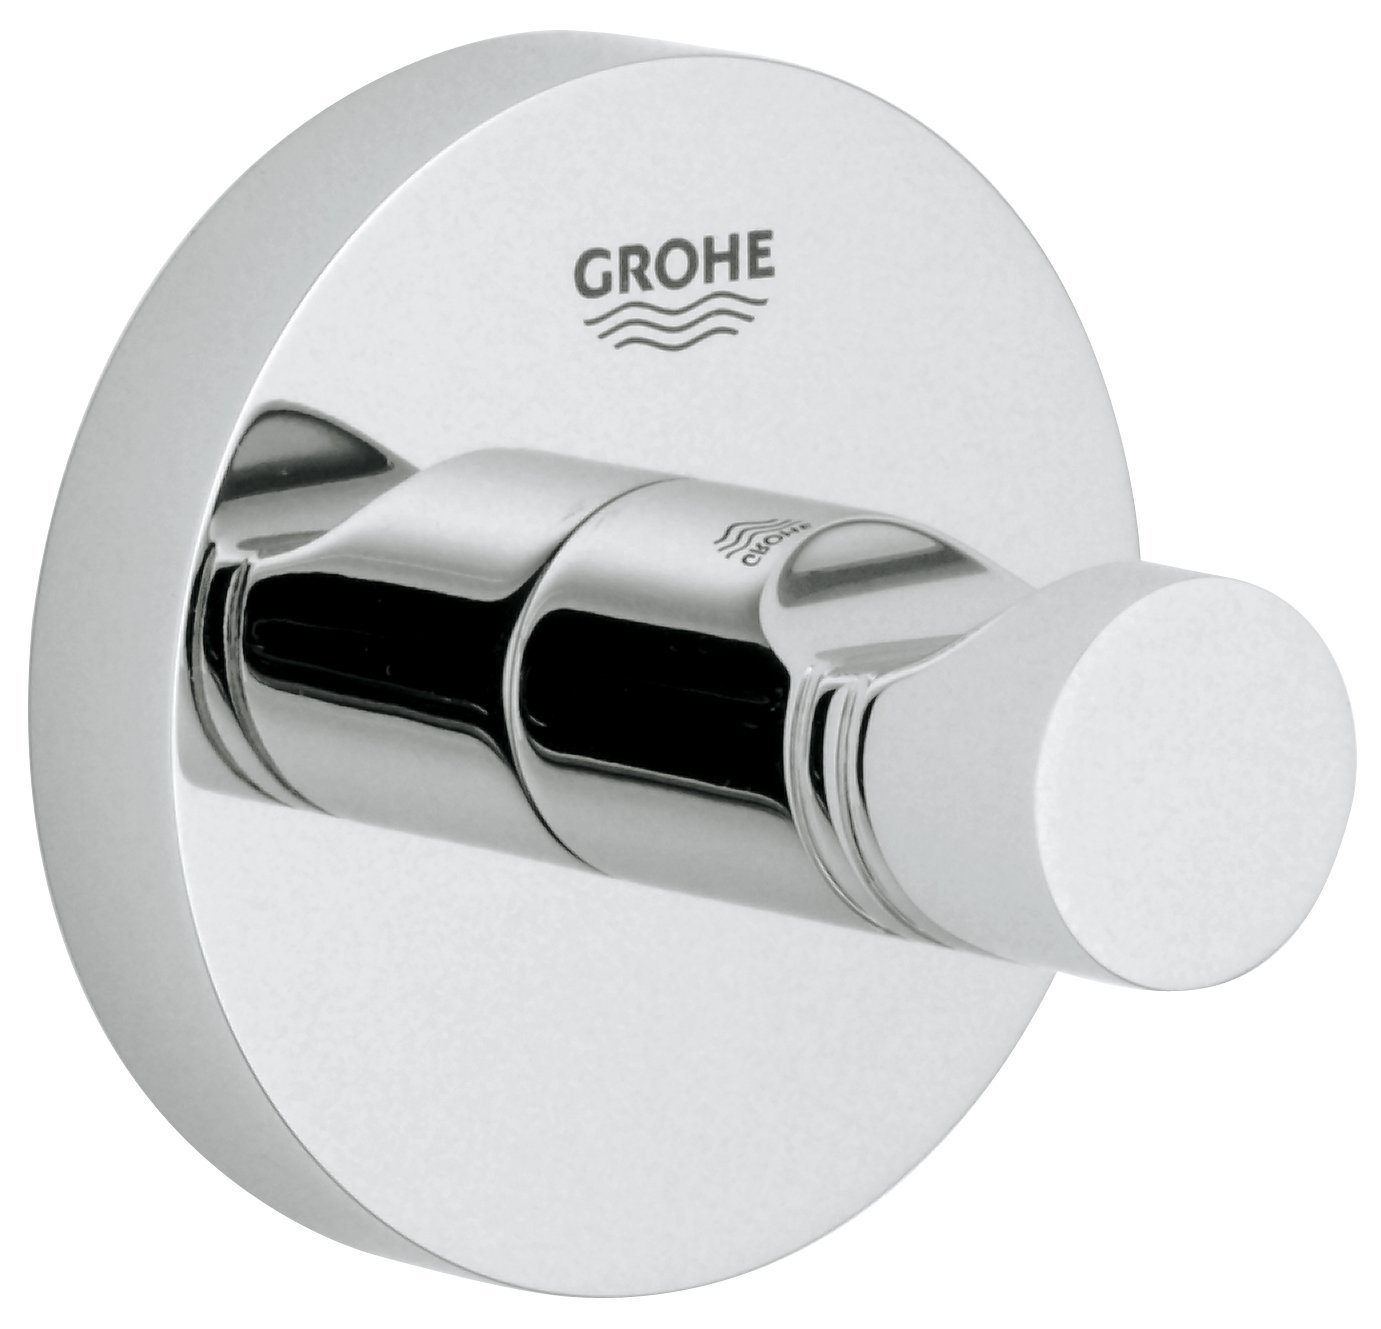 Cheap Grohe Catalogue, find Grohe Catalogue deals on line at Alibaba.com